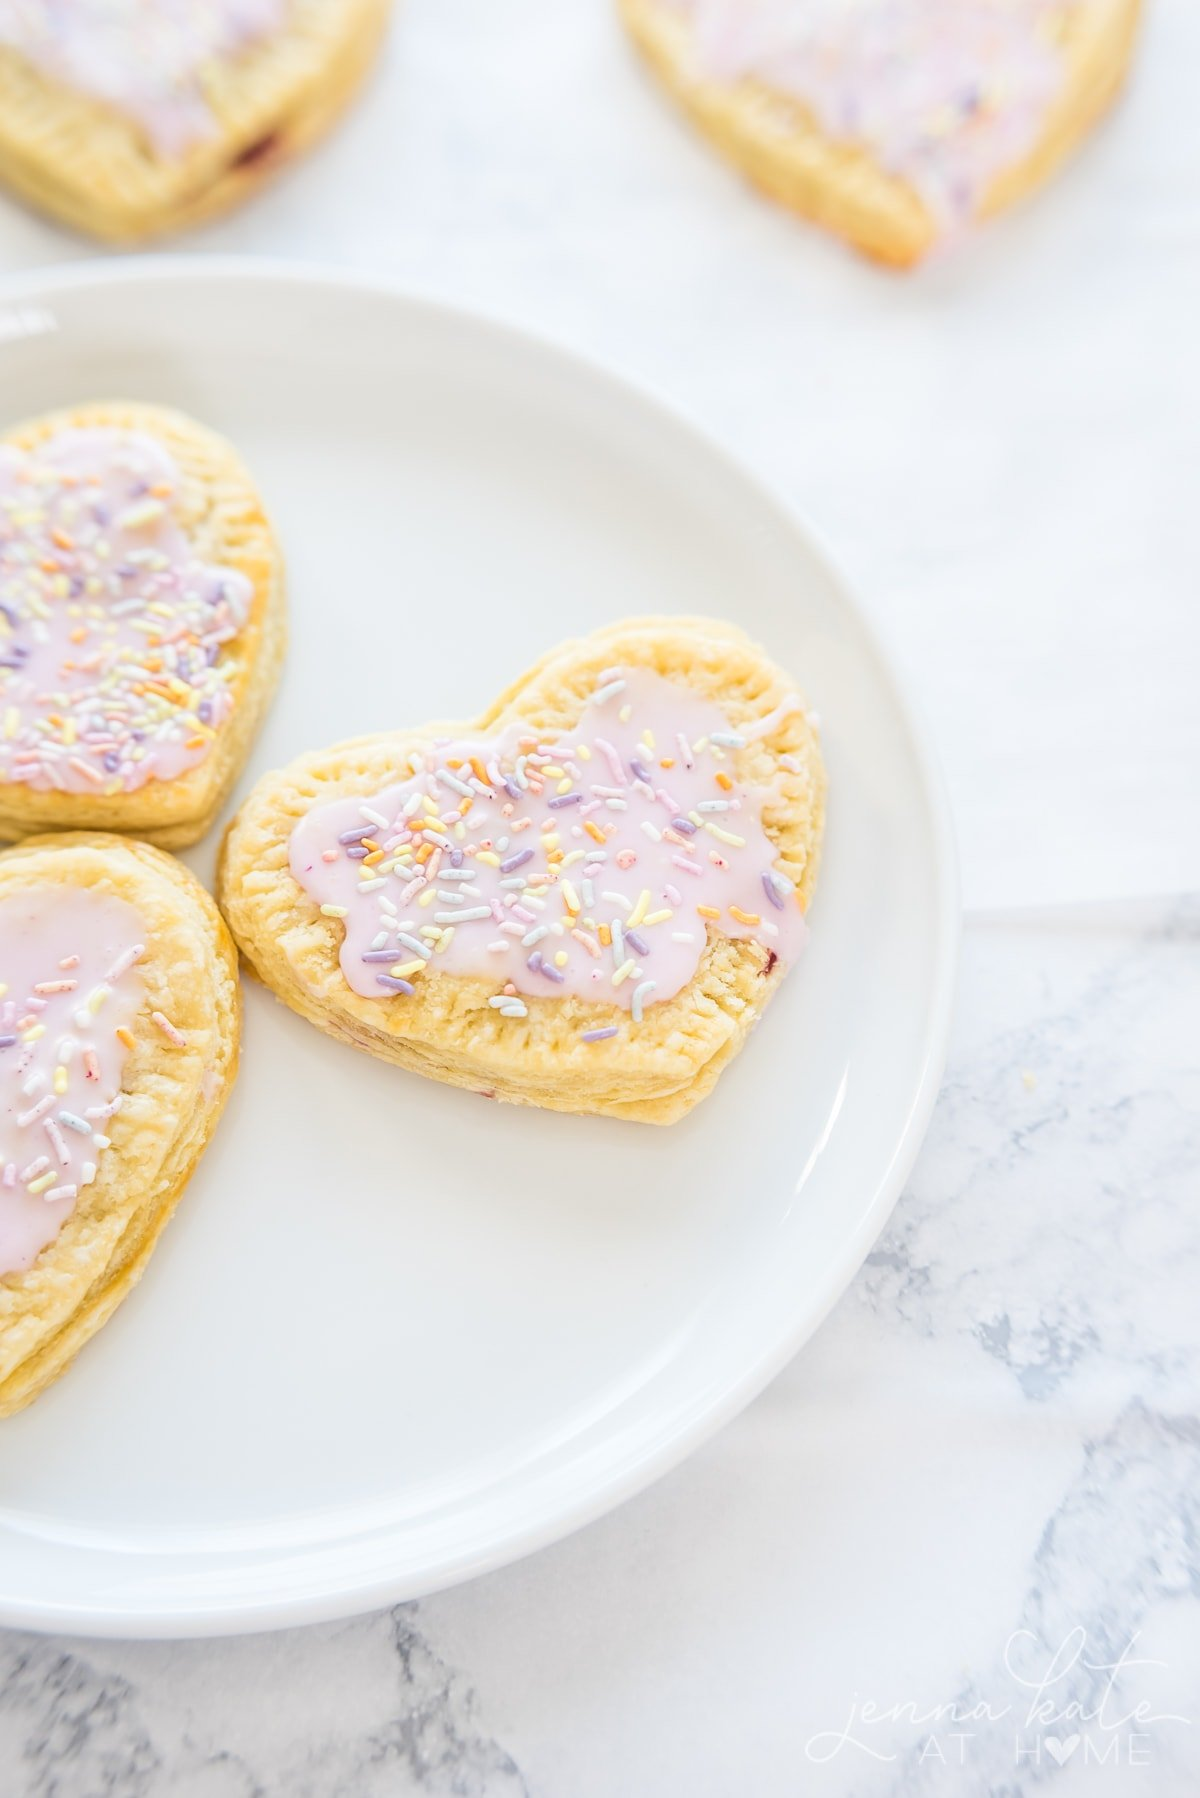 Easy recipe for puff pastry pop tarts with vanilla icing for Valentine's breakfast